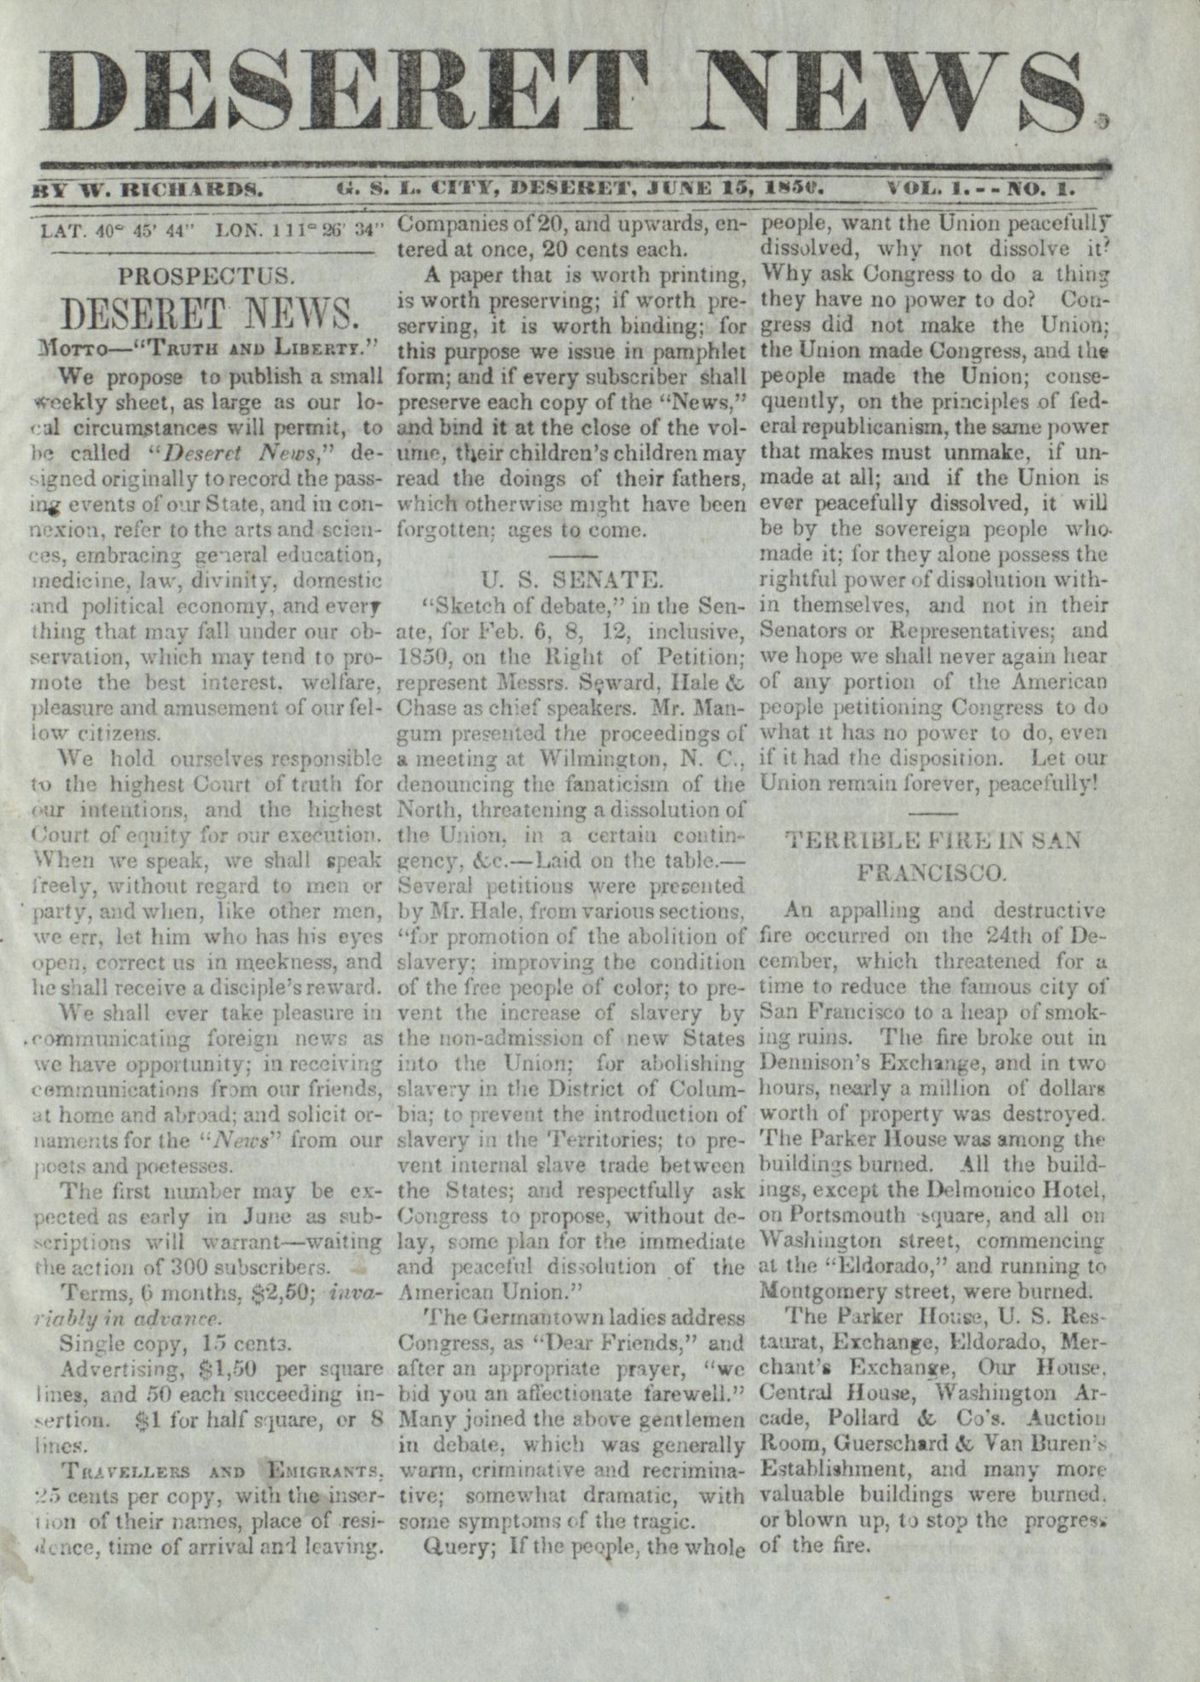 First edition of the Deseret News from June 15, 1850.